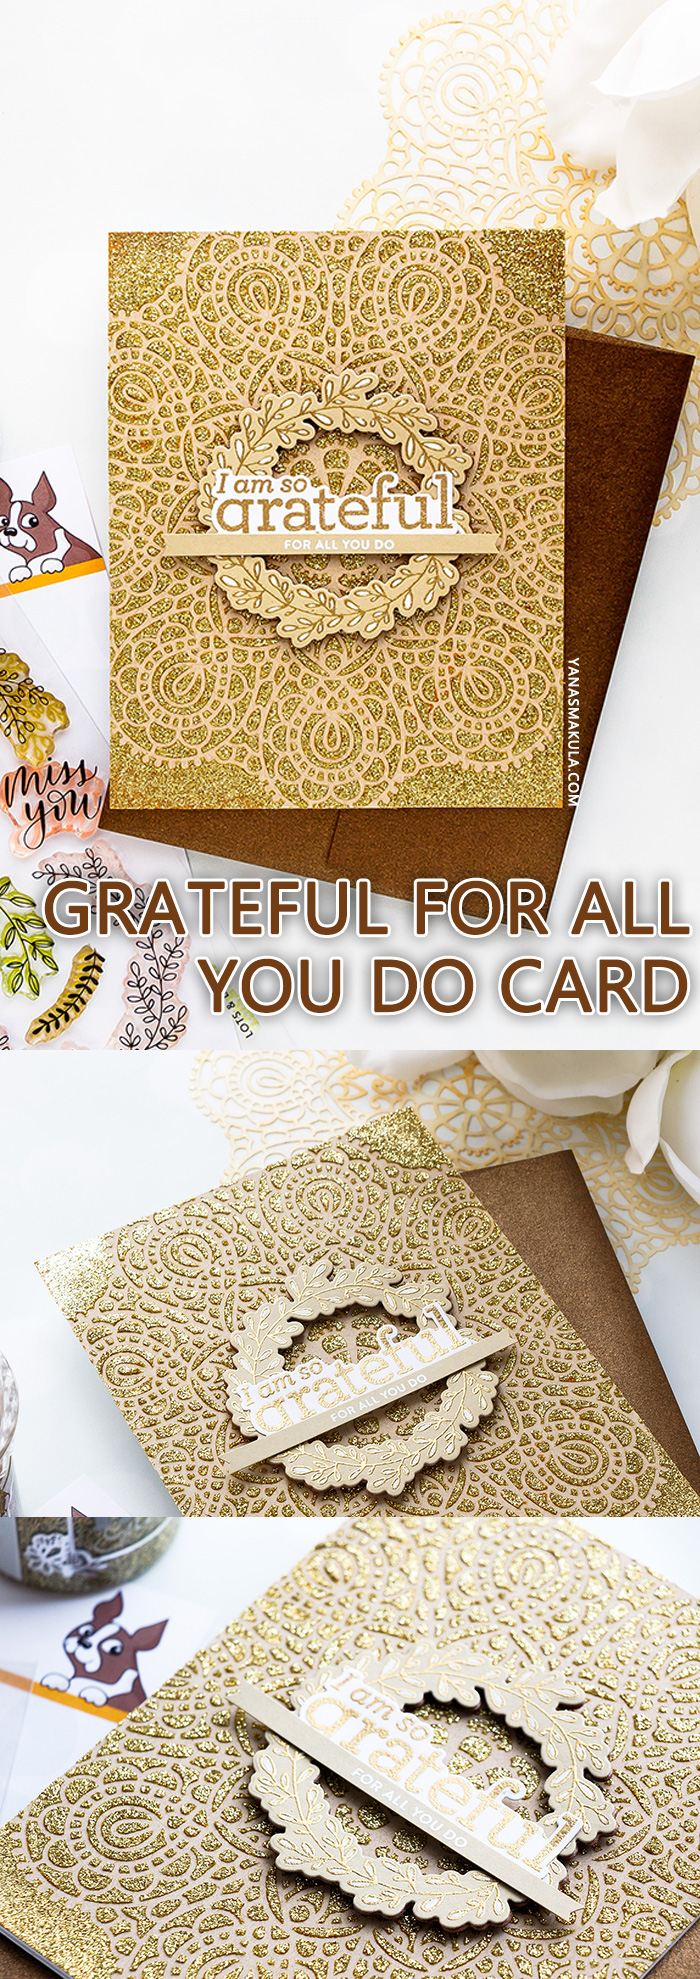 Simon Says Stamp | Grateful For You Card by Yana Smakula featuring CIRCULAR LACE SSST121395 Stencil, WREATH GREETINGS sss101834 and LOVE YOU MAMA CZ18 stamps #simonsaysstamp #yscardmaking #cardmaking #handmadecard #gratitudecard